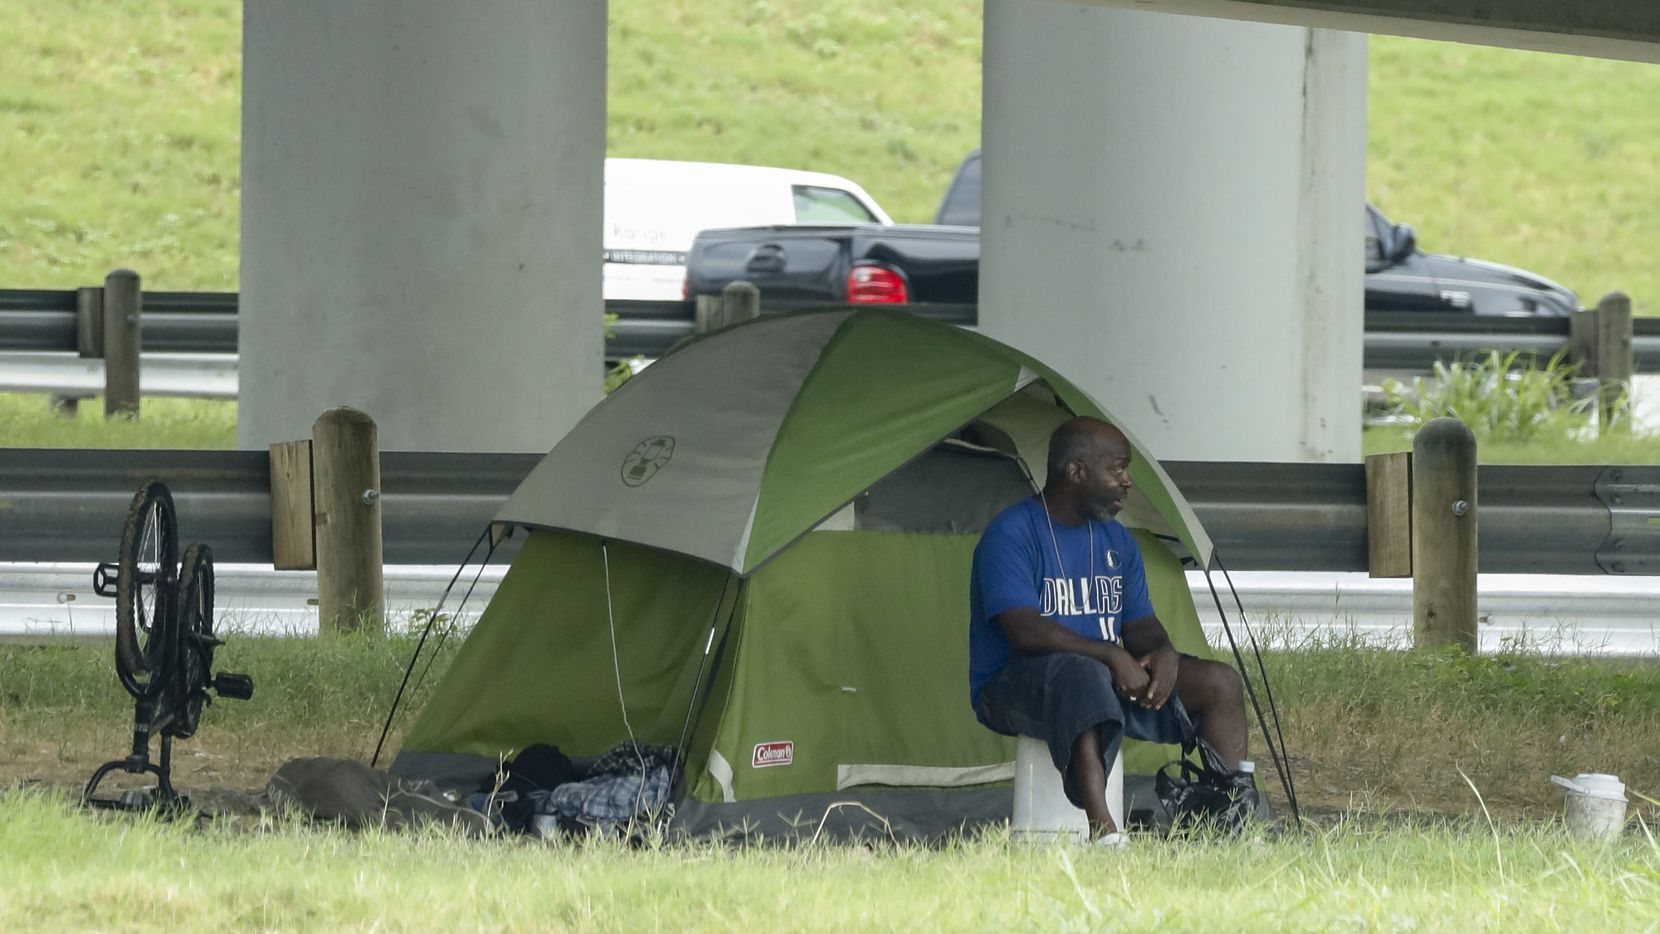 A man sits outside his tent underneath I-35 near downtown on Wednesday, Aug. 18, 2021, in Dallas. (Elias Valverde II/The Dallas Morning News)